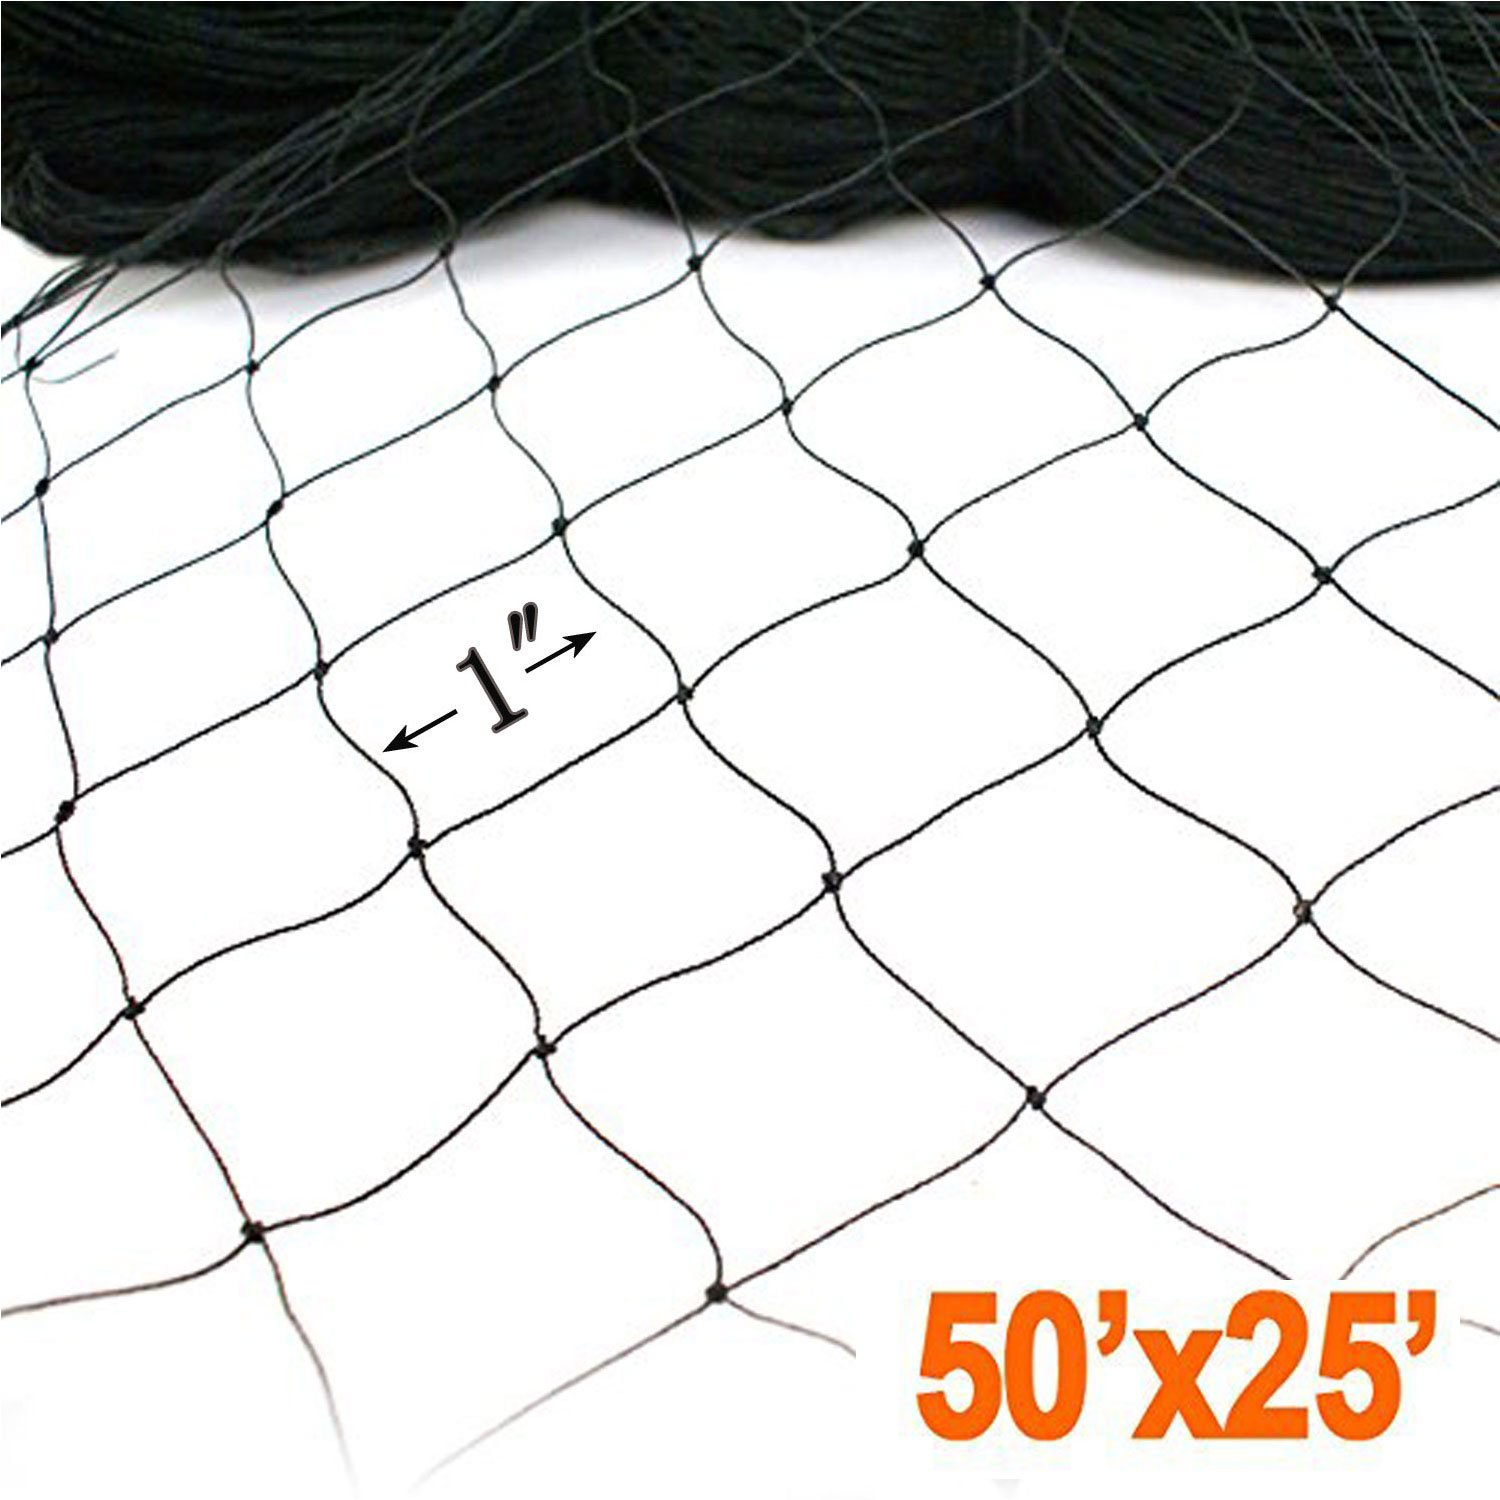 25' X 50' Net Netting for Bird Poultry Aviary Game Pens New 1'' Square Mesh Size, Garden Netting Protects Fruit Trees & Vegetables from Hungry Birds & Chickens (25'50' with 1'1' mesh) by Fickey (Image #2)